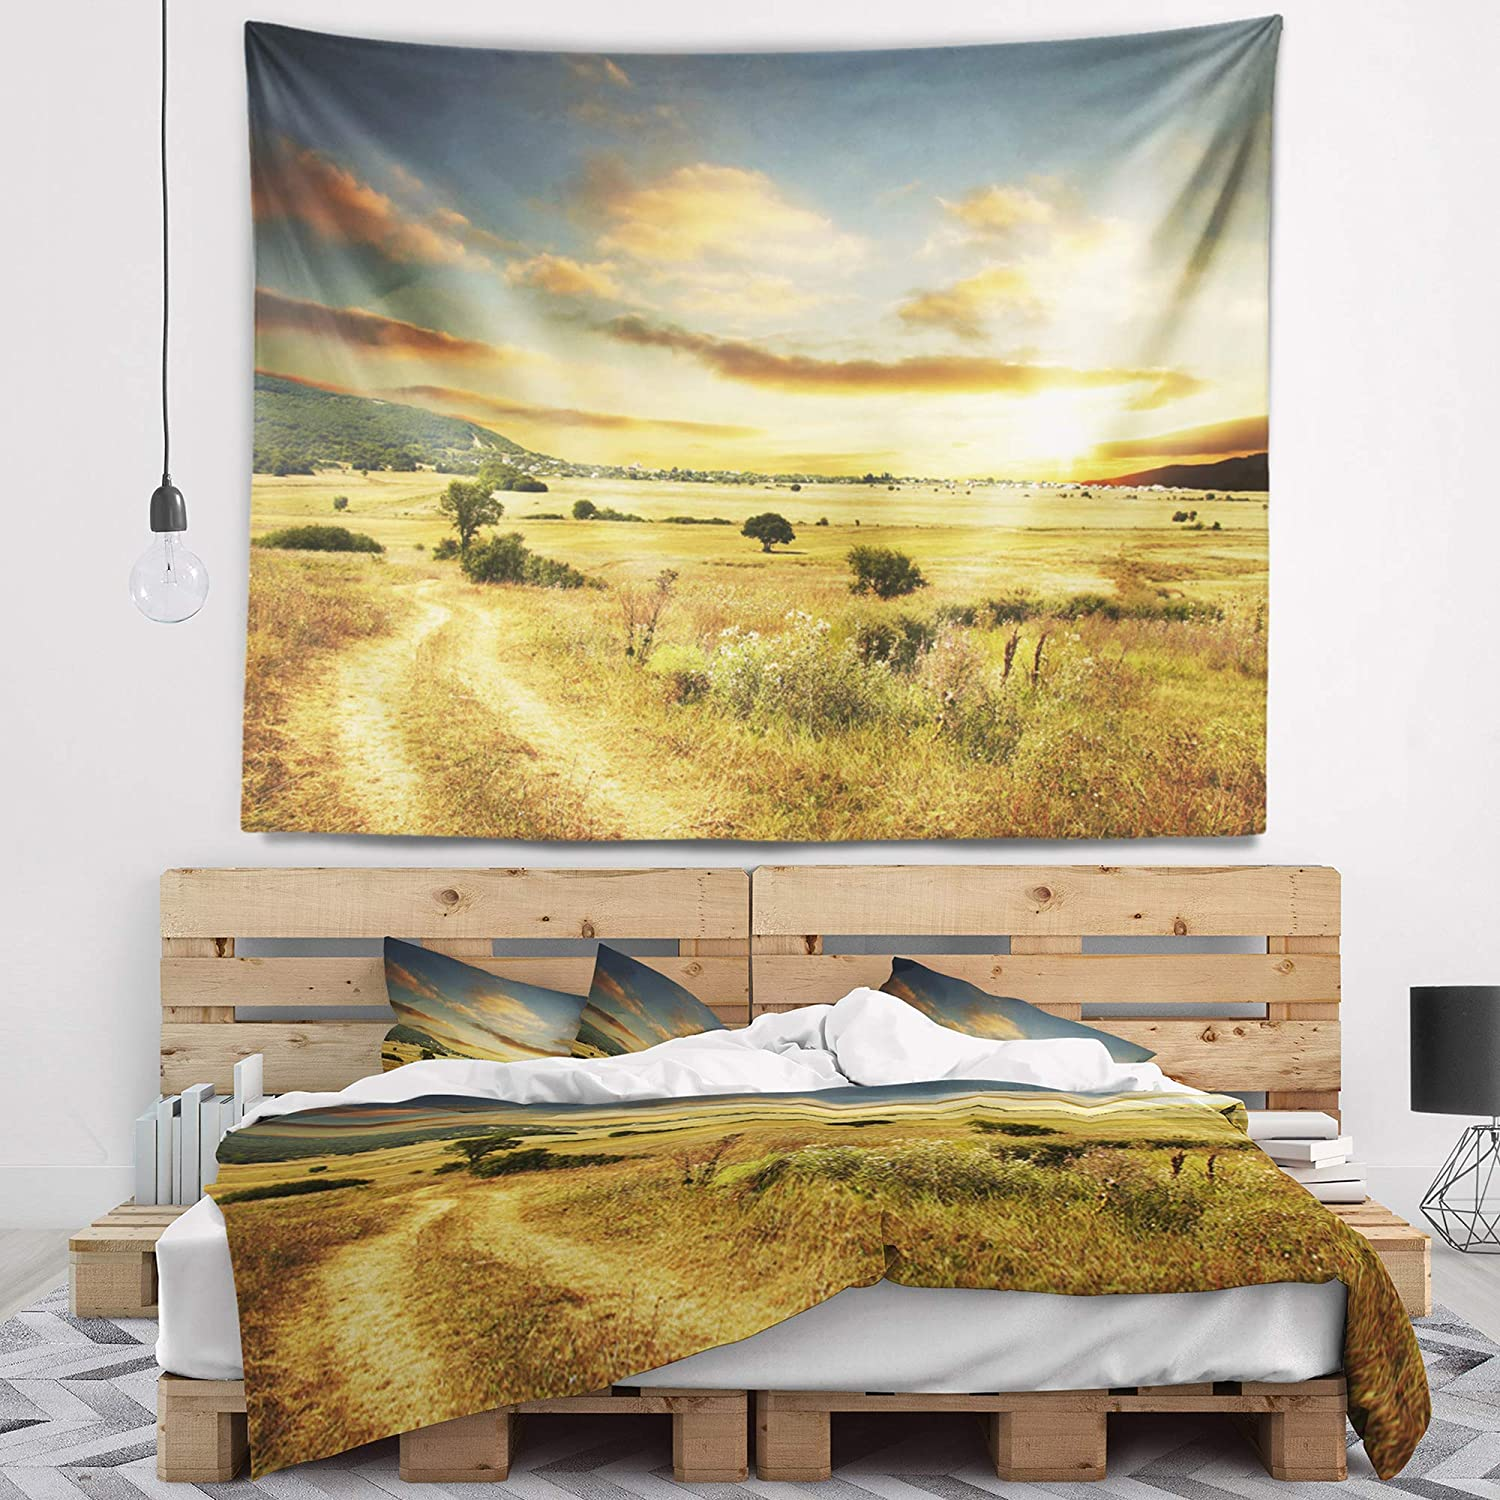 Designart TAP12915-39-32  Beautiful Rural Prairie Sunset African Landscape Blanket D/écor Art for Home and Office Wall Tapestry Medium 39 x 32